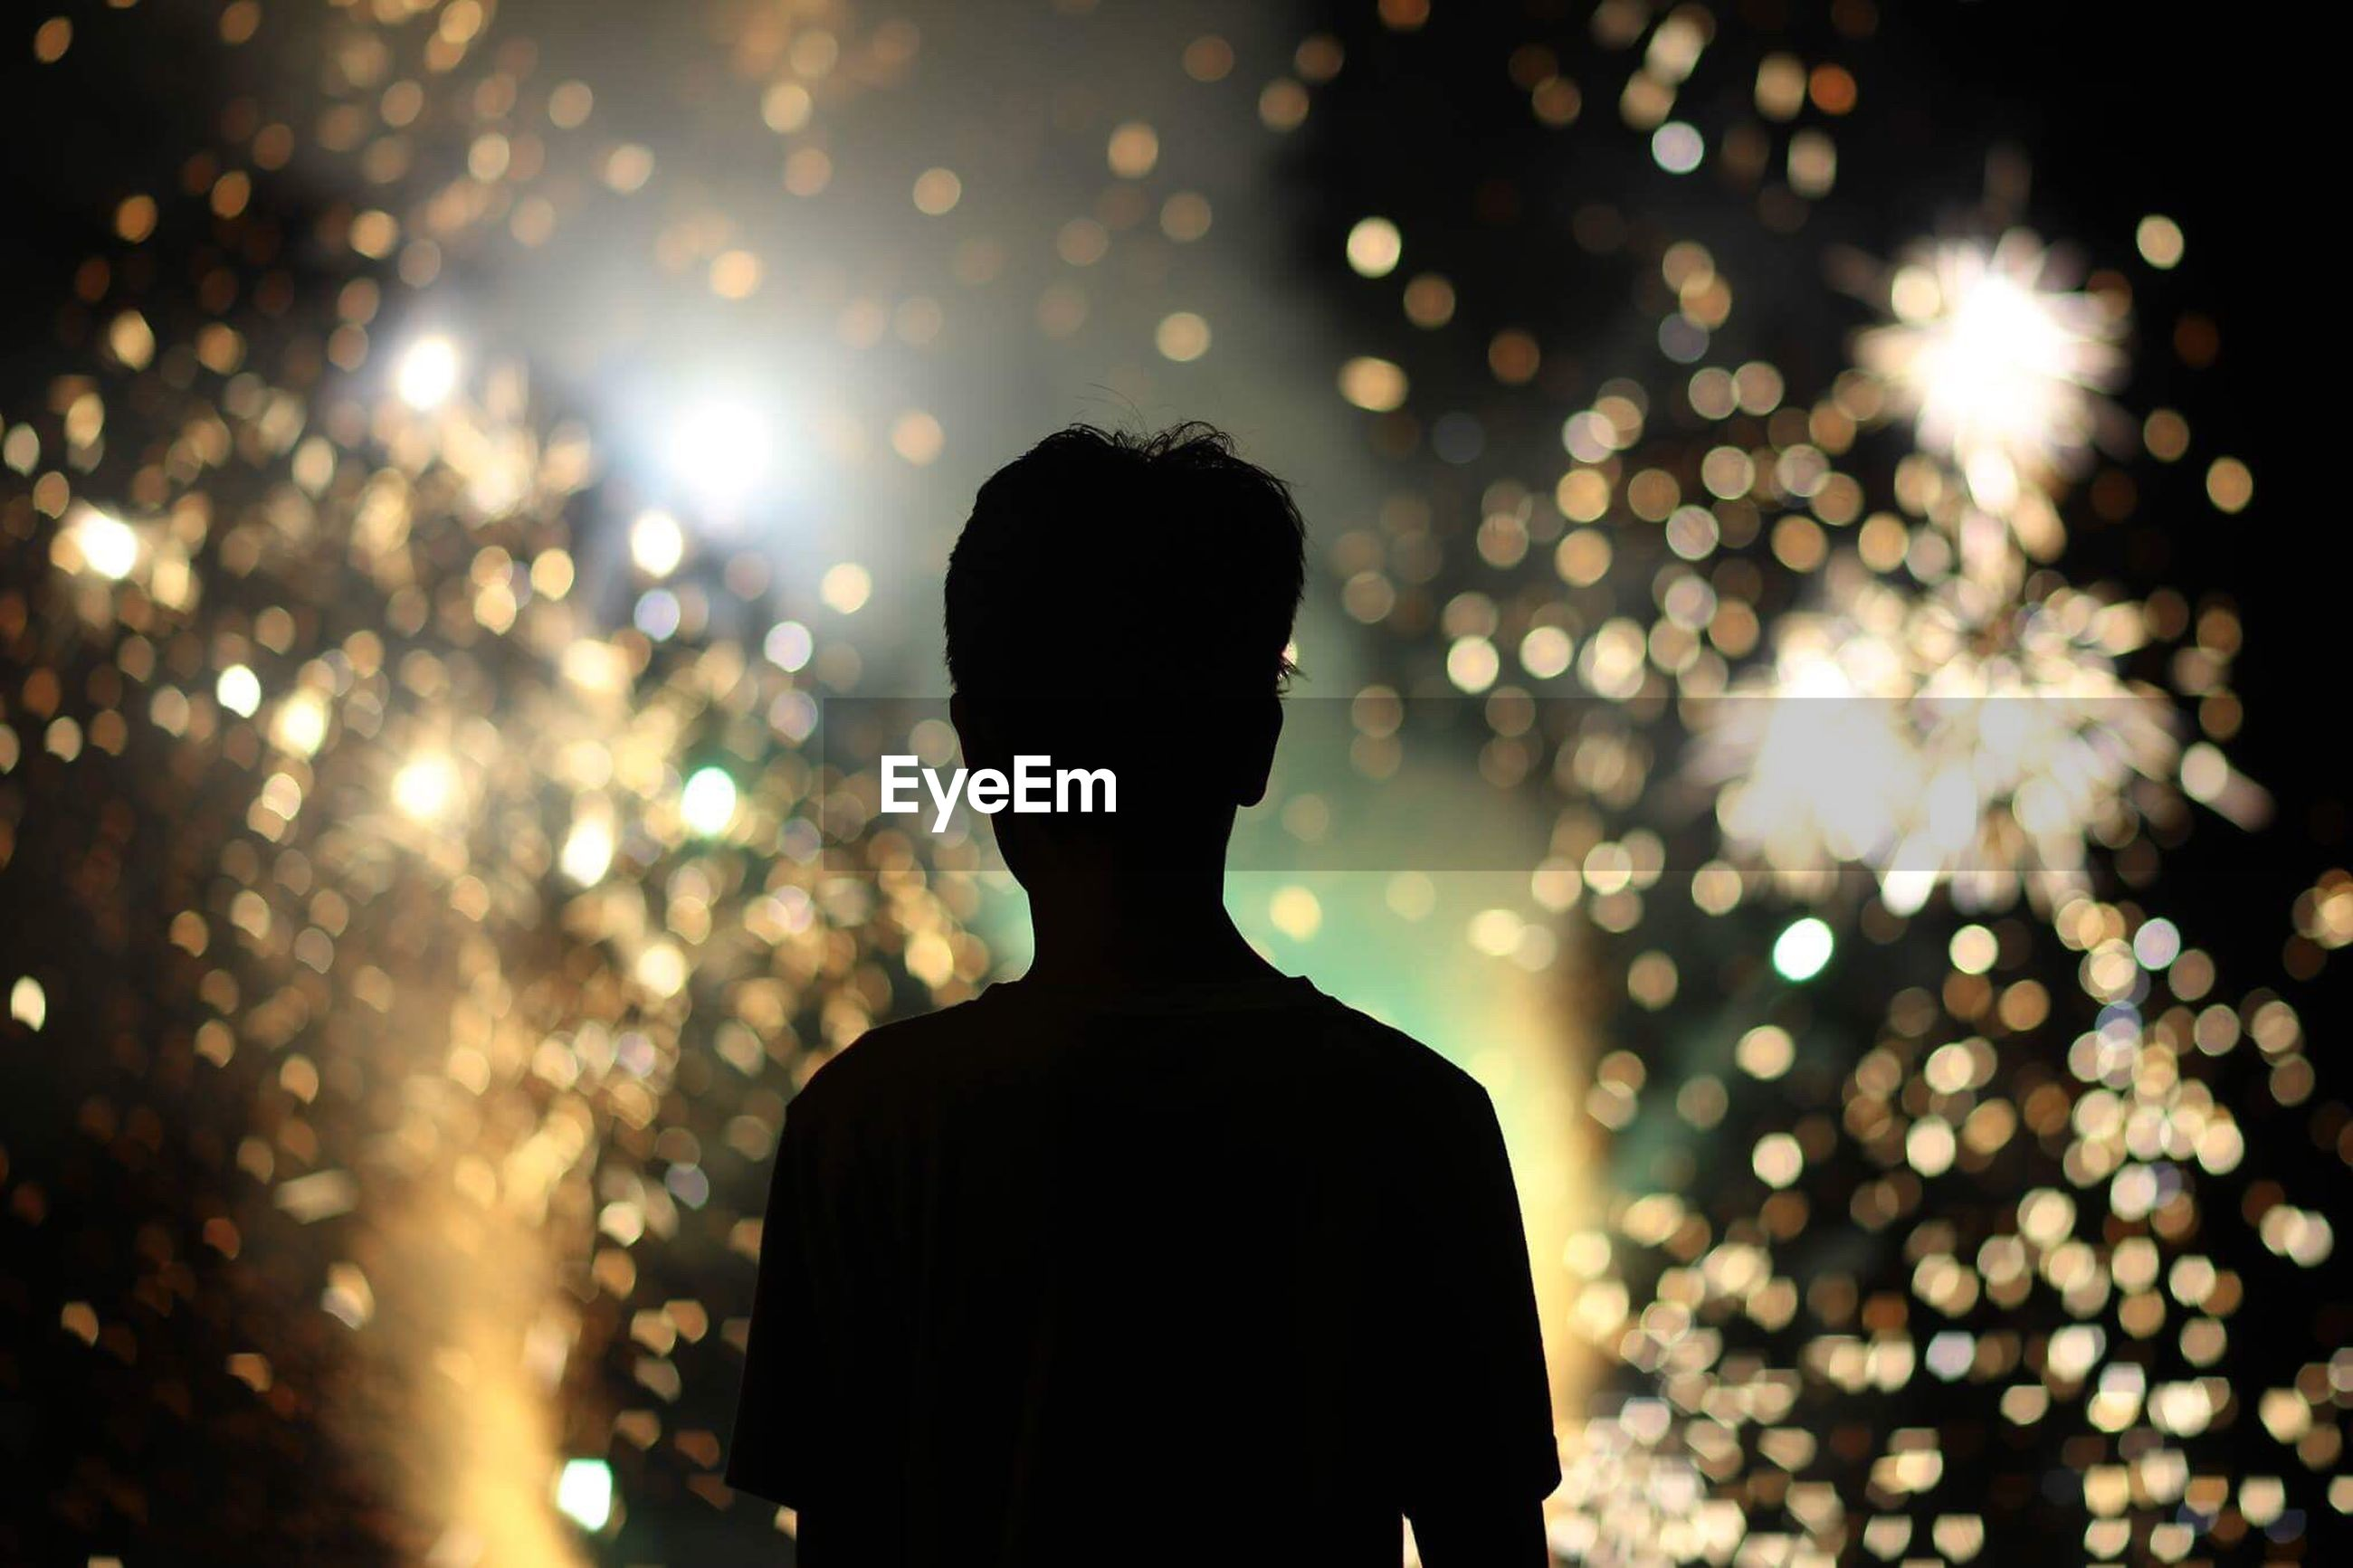 Rear view of silhouette man against illuminated sparklers at night